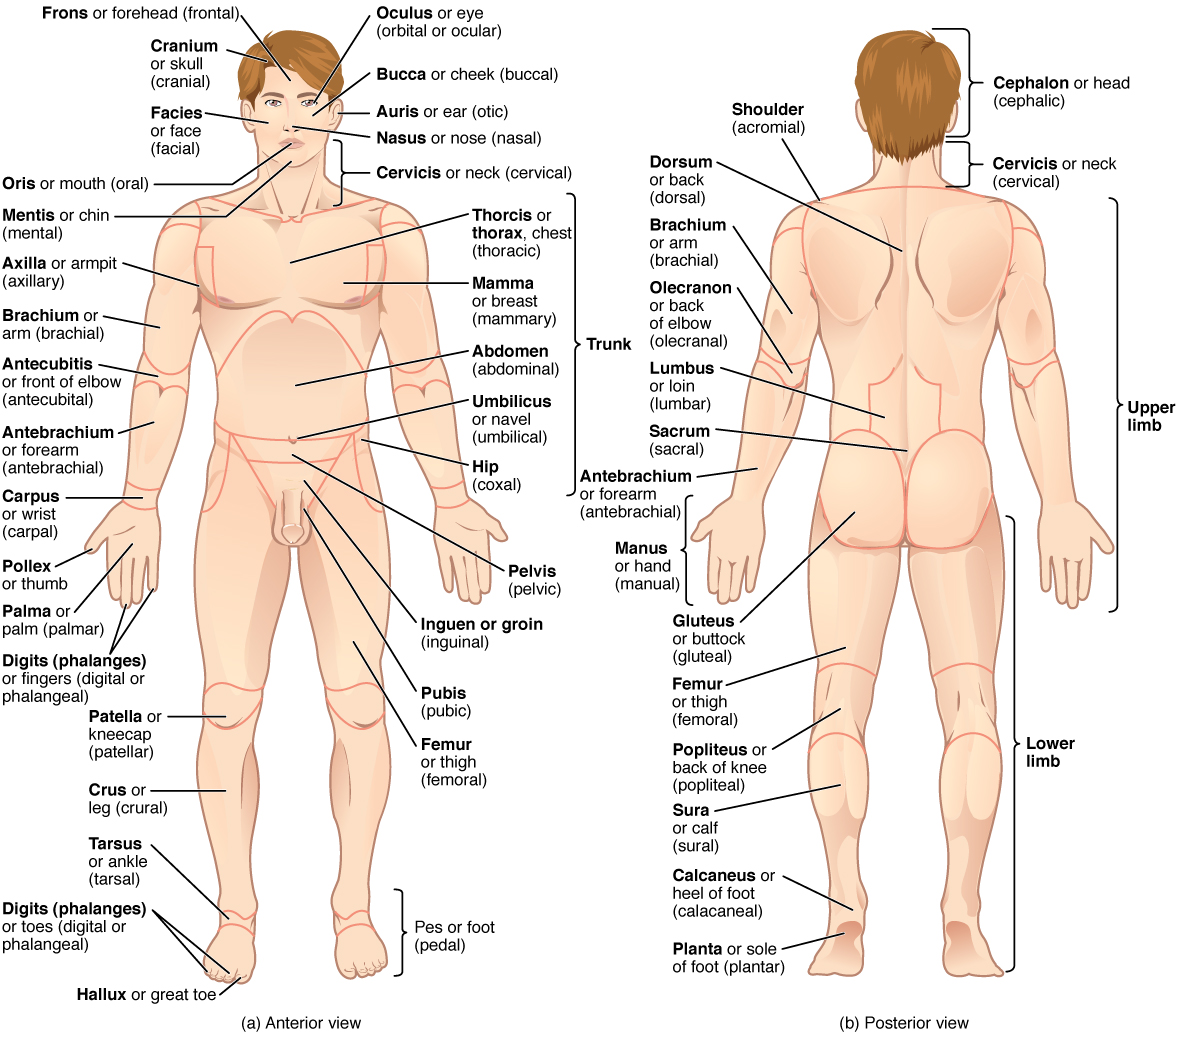 Worksheets Anatomical Terminology Worksheet anatomical terminology anatomy and physiology i this illustration shows an anterior posterior view of the human body cranial region